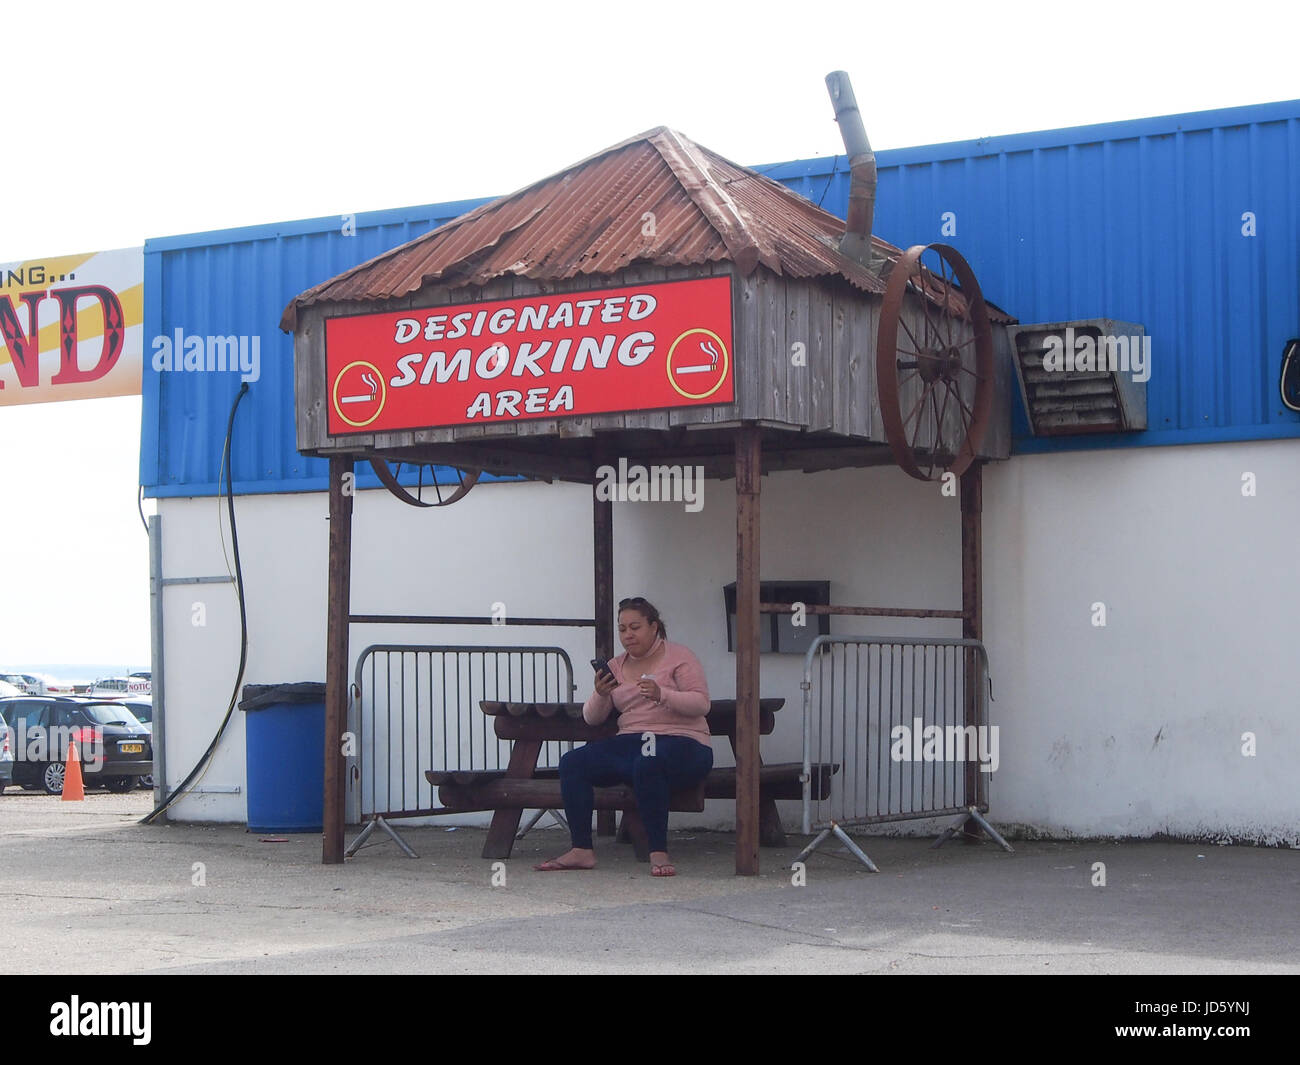 A designated smoking area at a children's funfair - Stock Image